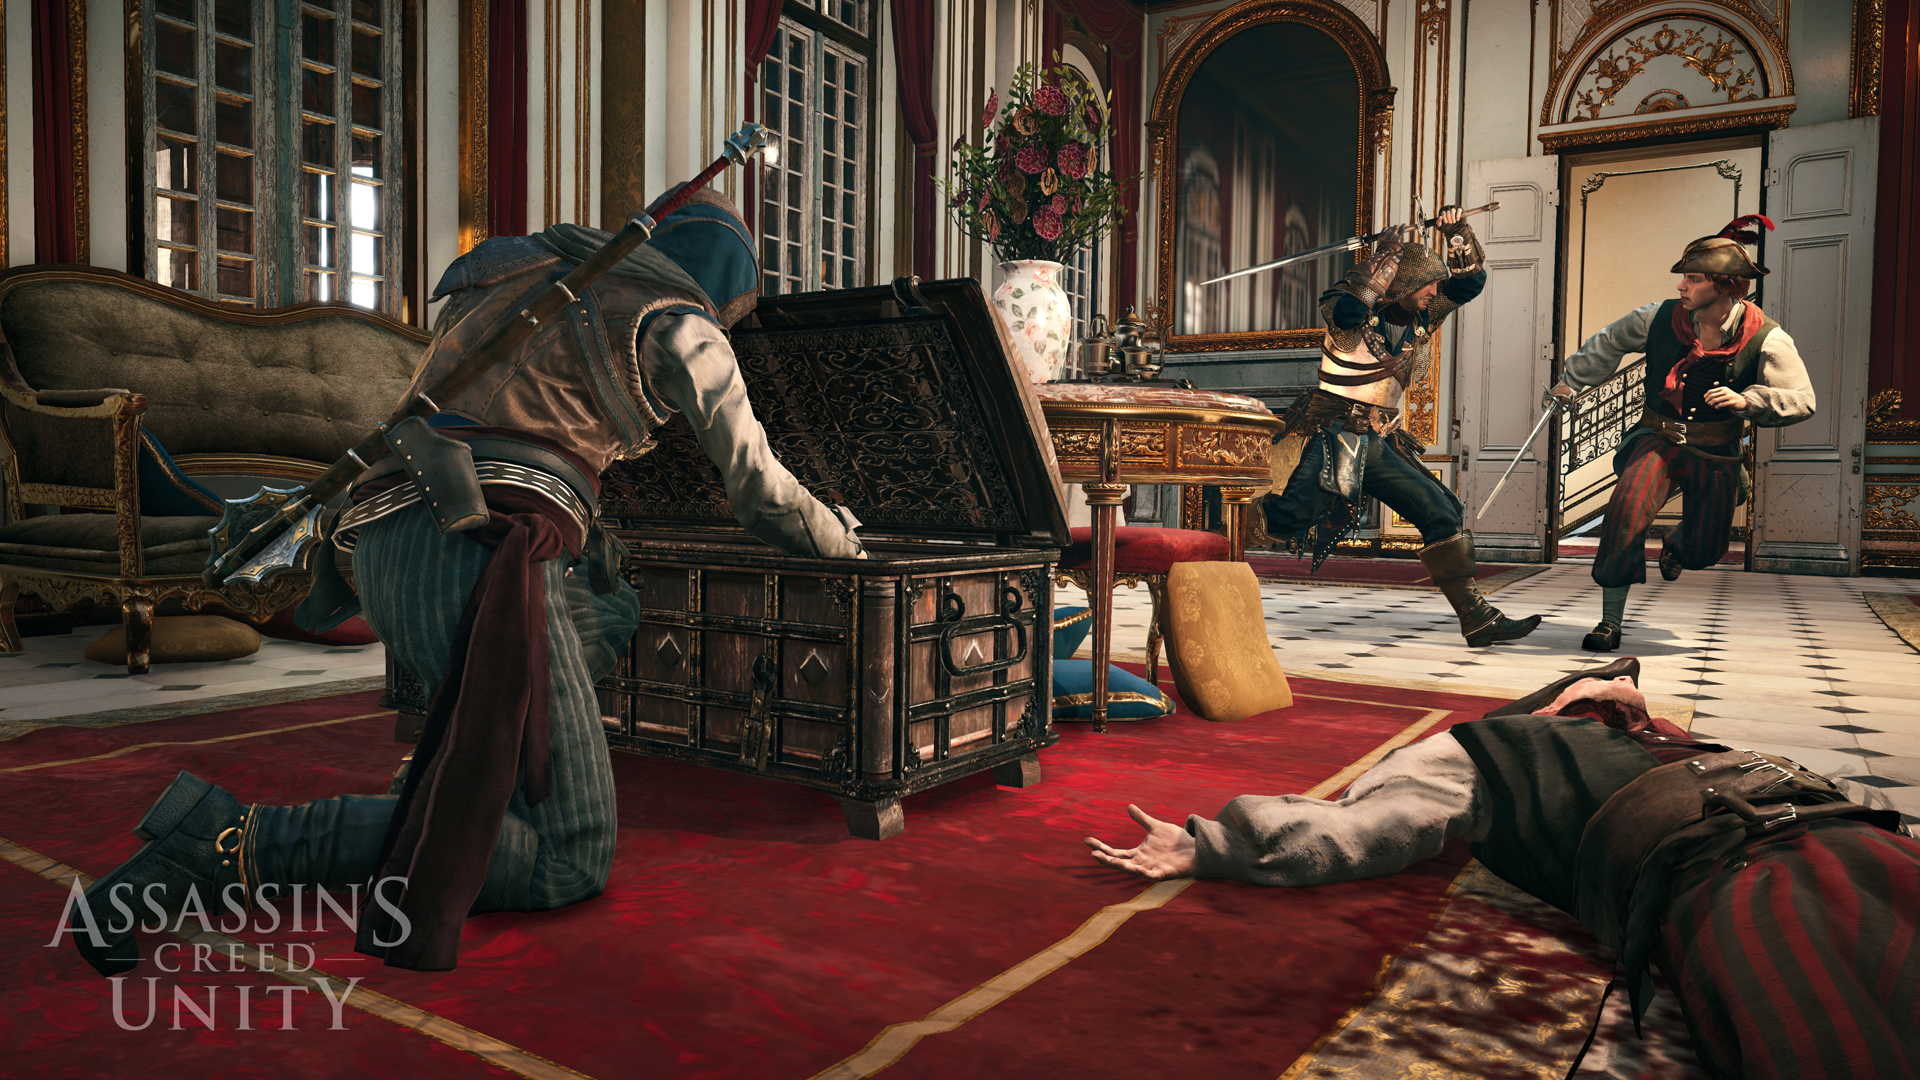 [FIXO] Assassin's Creed Unity Assassin%27s_Creed_Unity_Heist_CoOp_166327